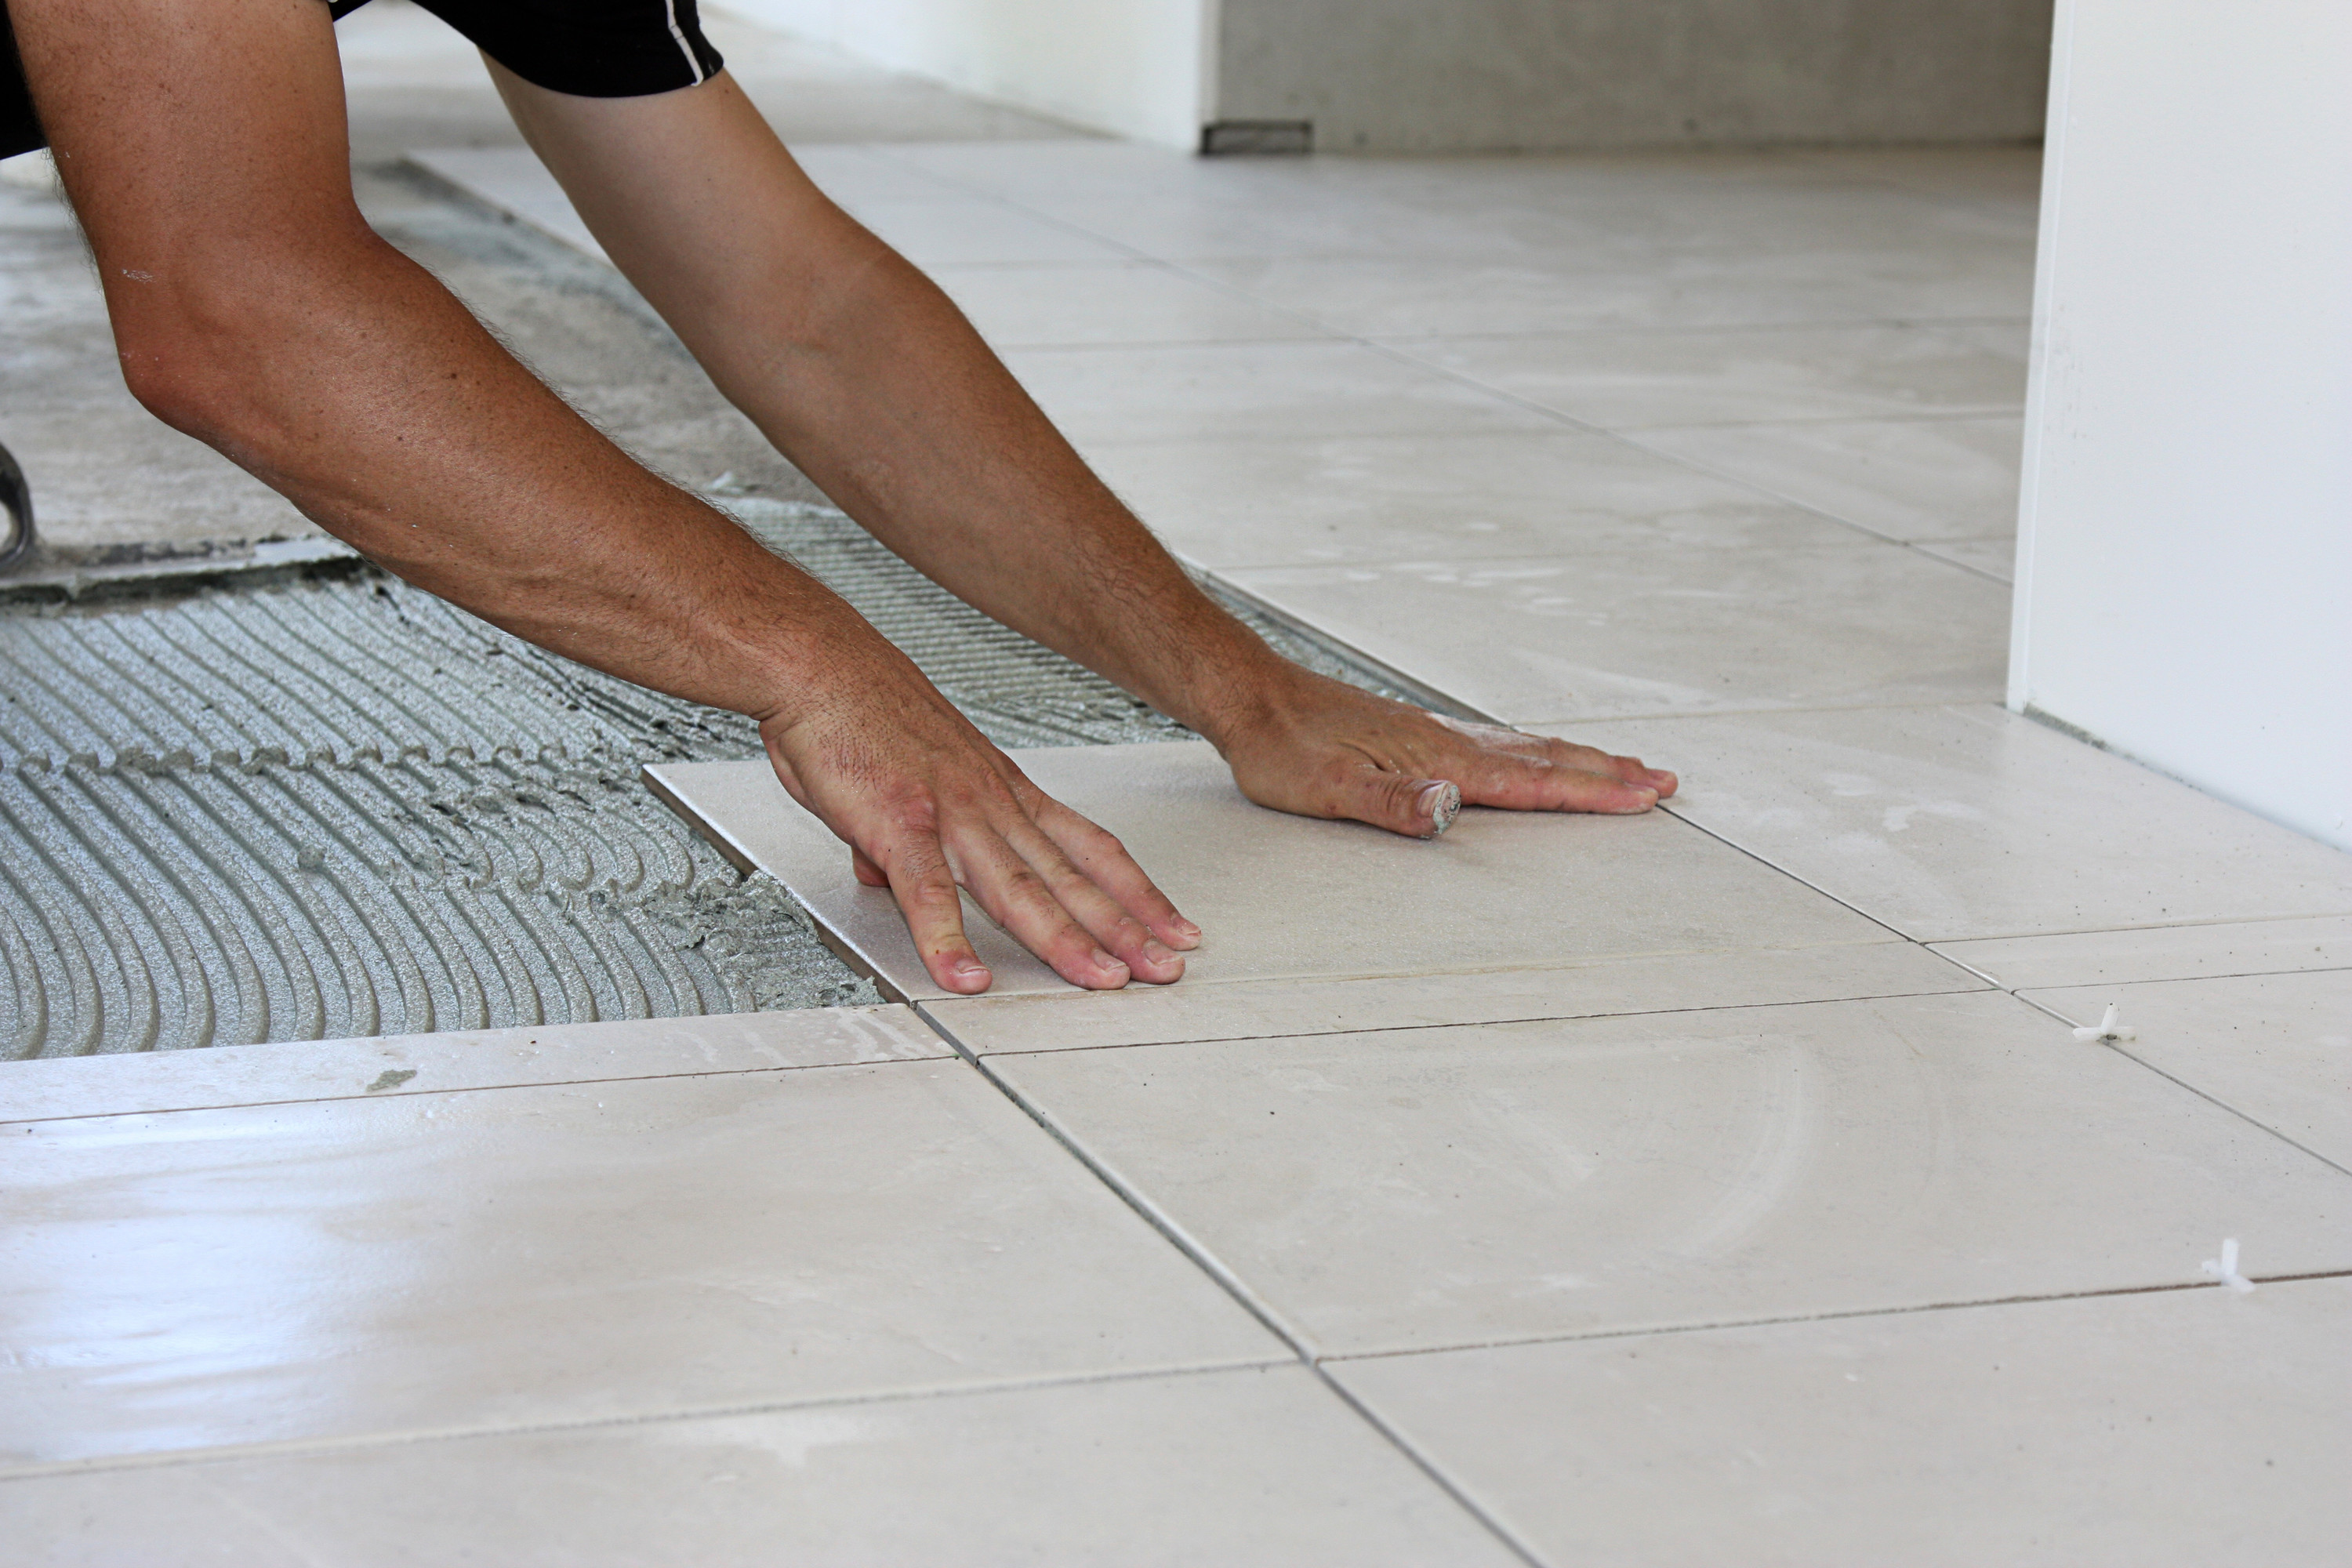 Tile flooring being installed to a kitchen in a home in Concord, CA